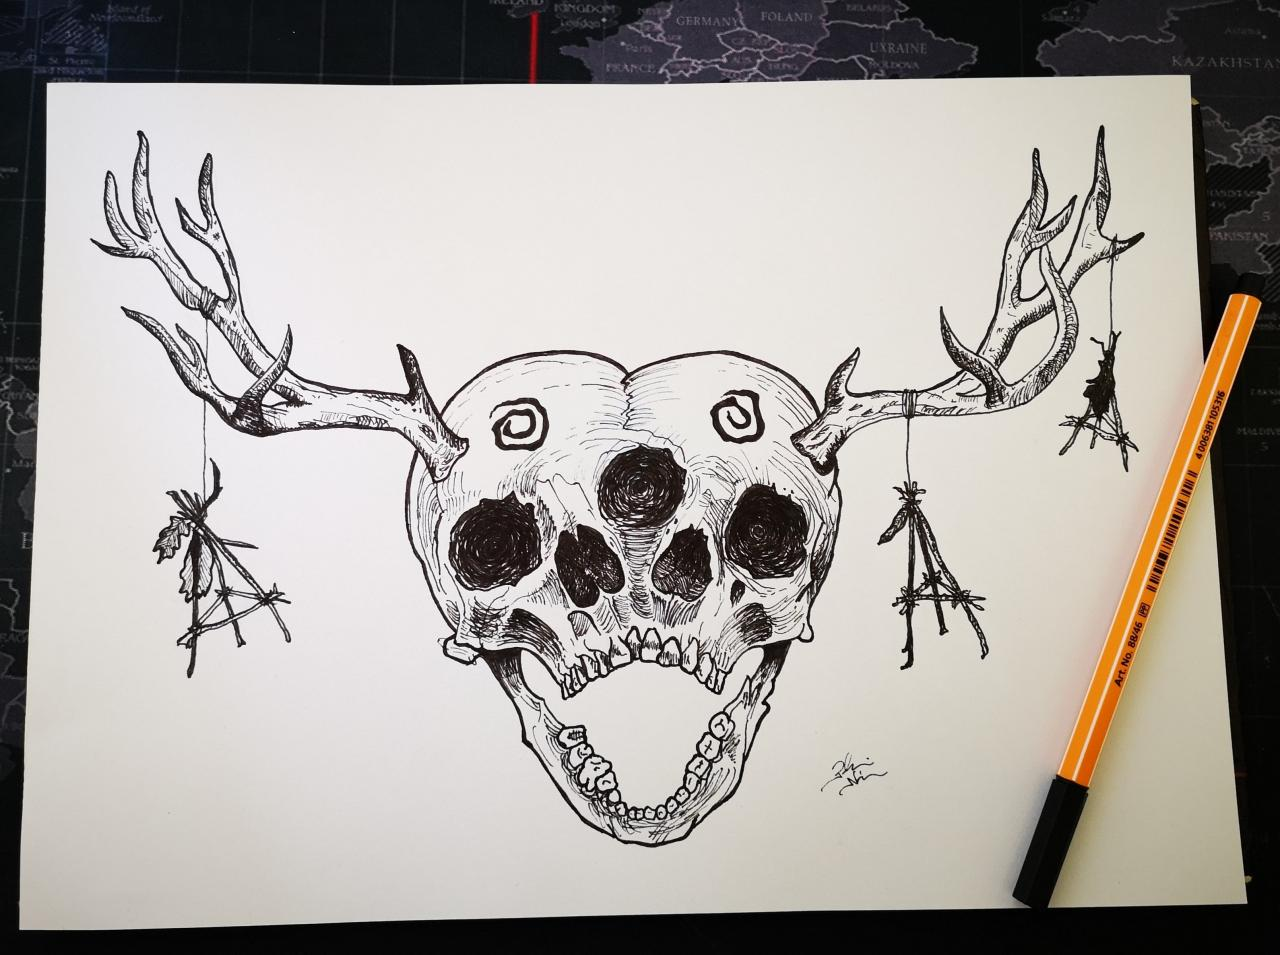 True Detective inspired tattoo design. Just recently started to practice drawing and design a few tattoo. Any feedback apreciated. (ig: @plesonandi)